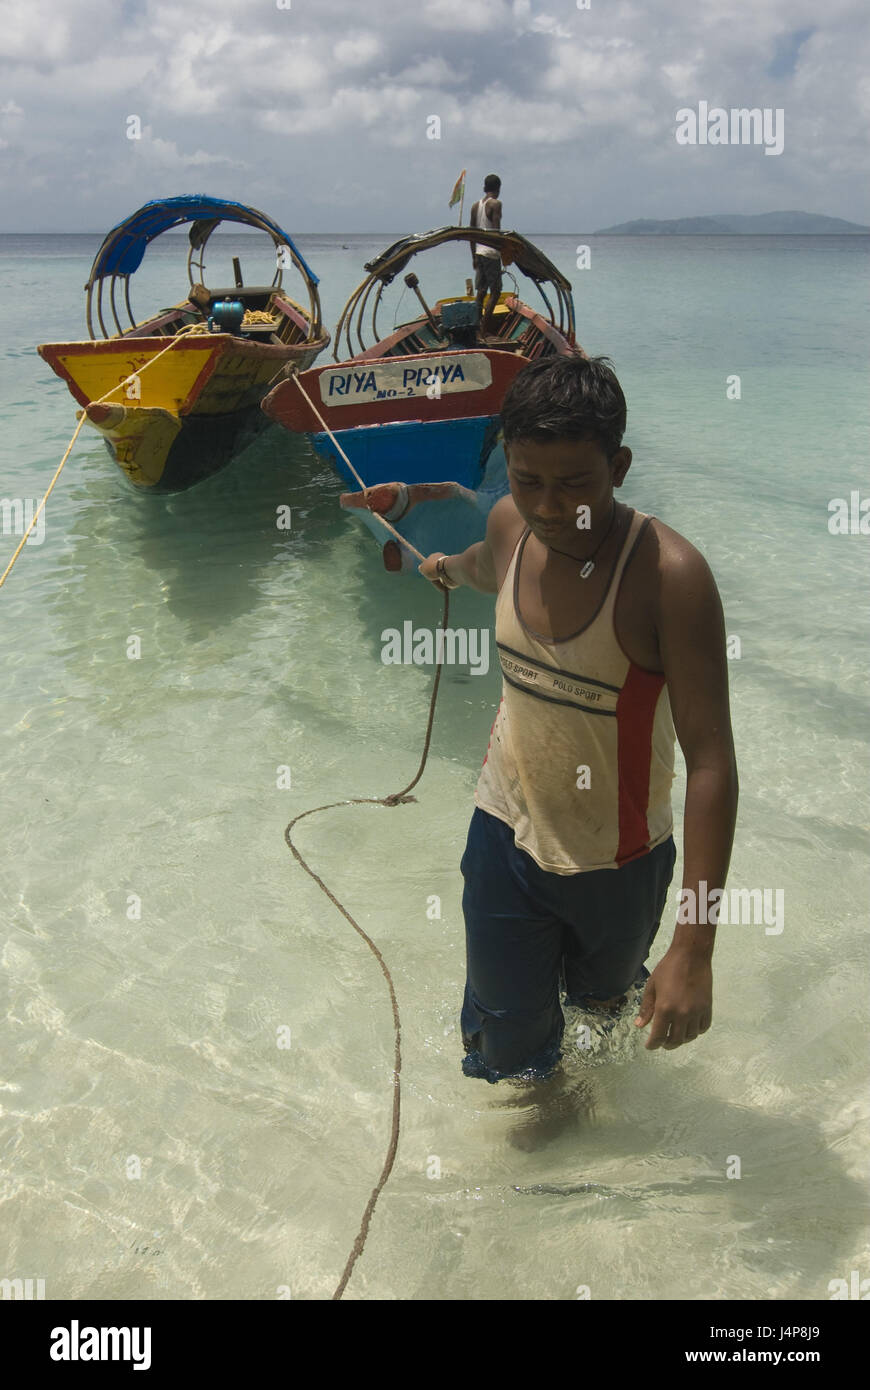 Man, young, drag, boats, coast, Indian ocean, Havelock Insel, Andamanen, India, no model release, - Stock Image